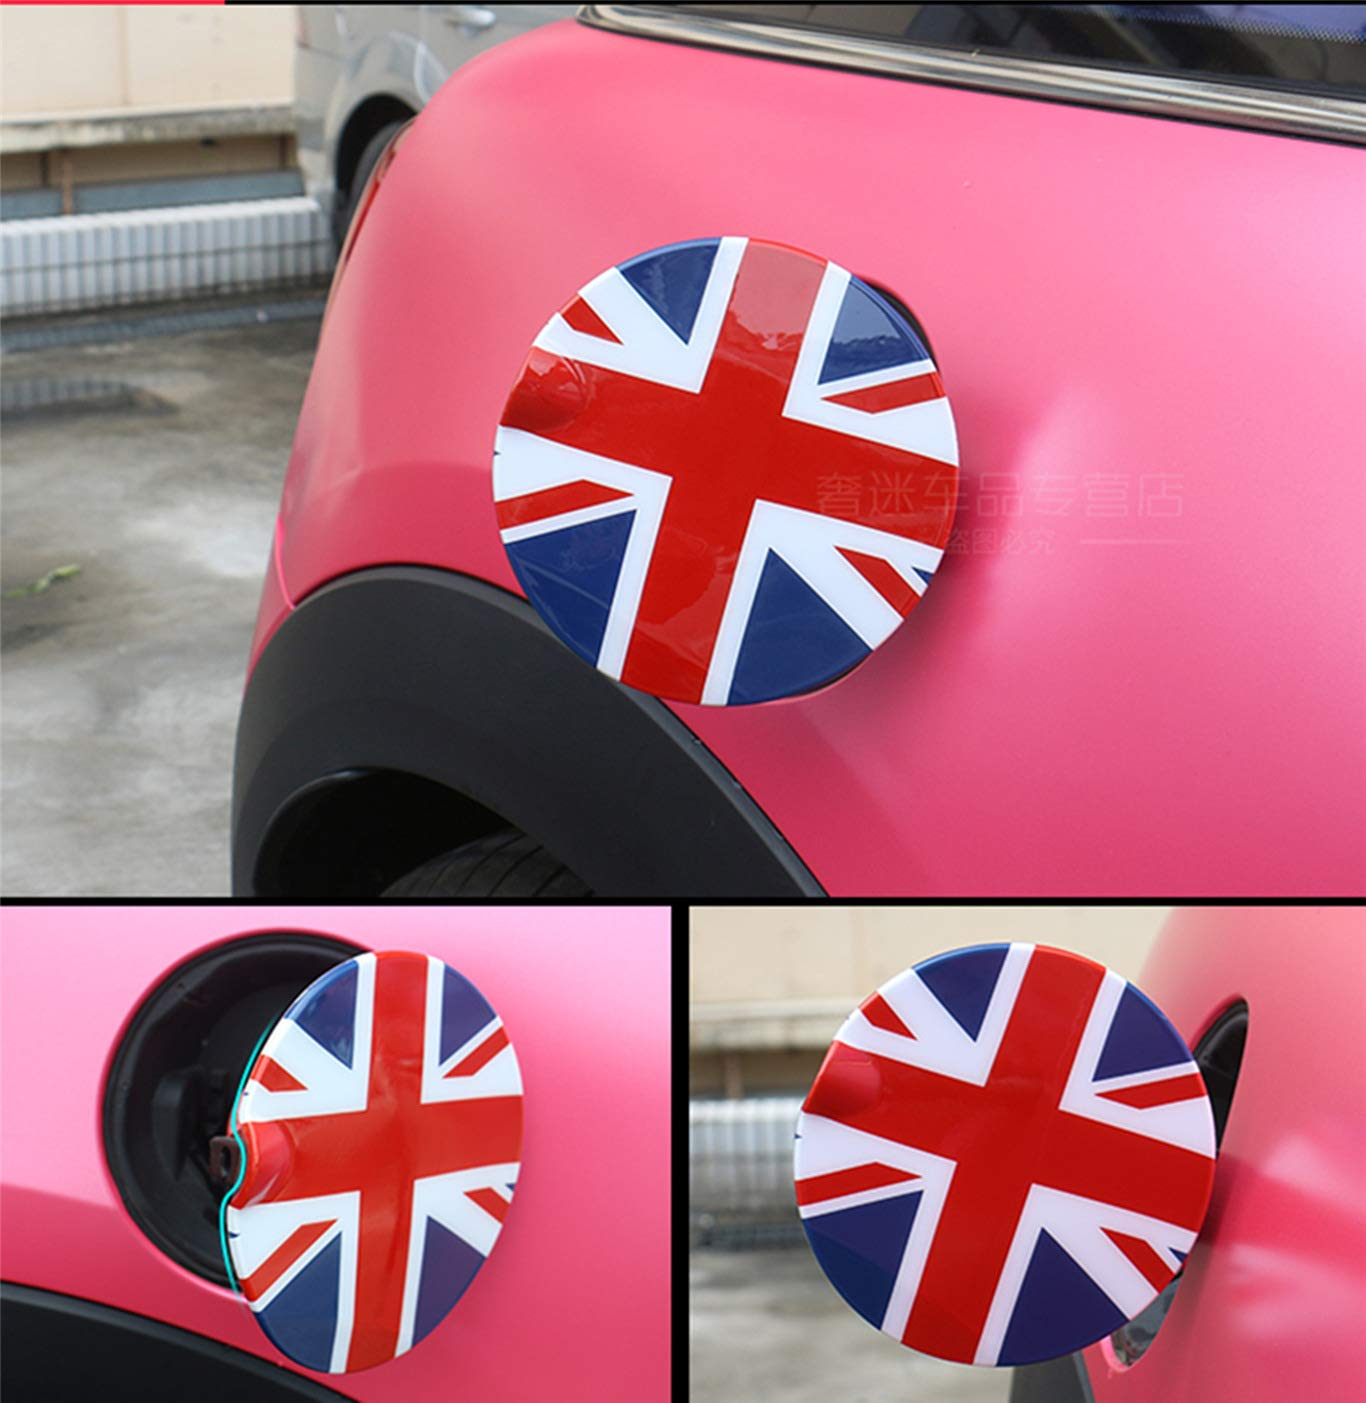 HDX Gas Tank Door Fuel Cover Trim Cap ABS for Mini Cooper F54 Clubman F55 Hardtop F56 Hatchback F57 Covertible F60 Countryman F54 Clubman, Union Jack Gray